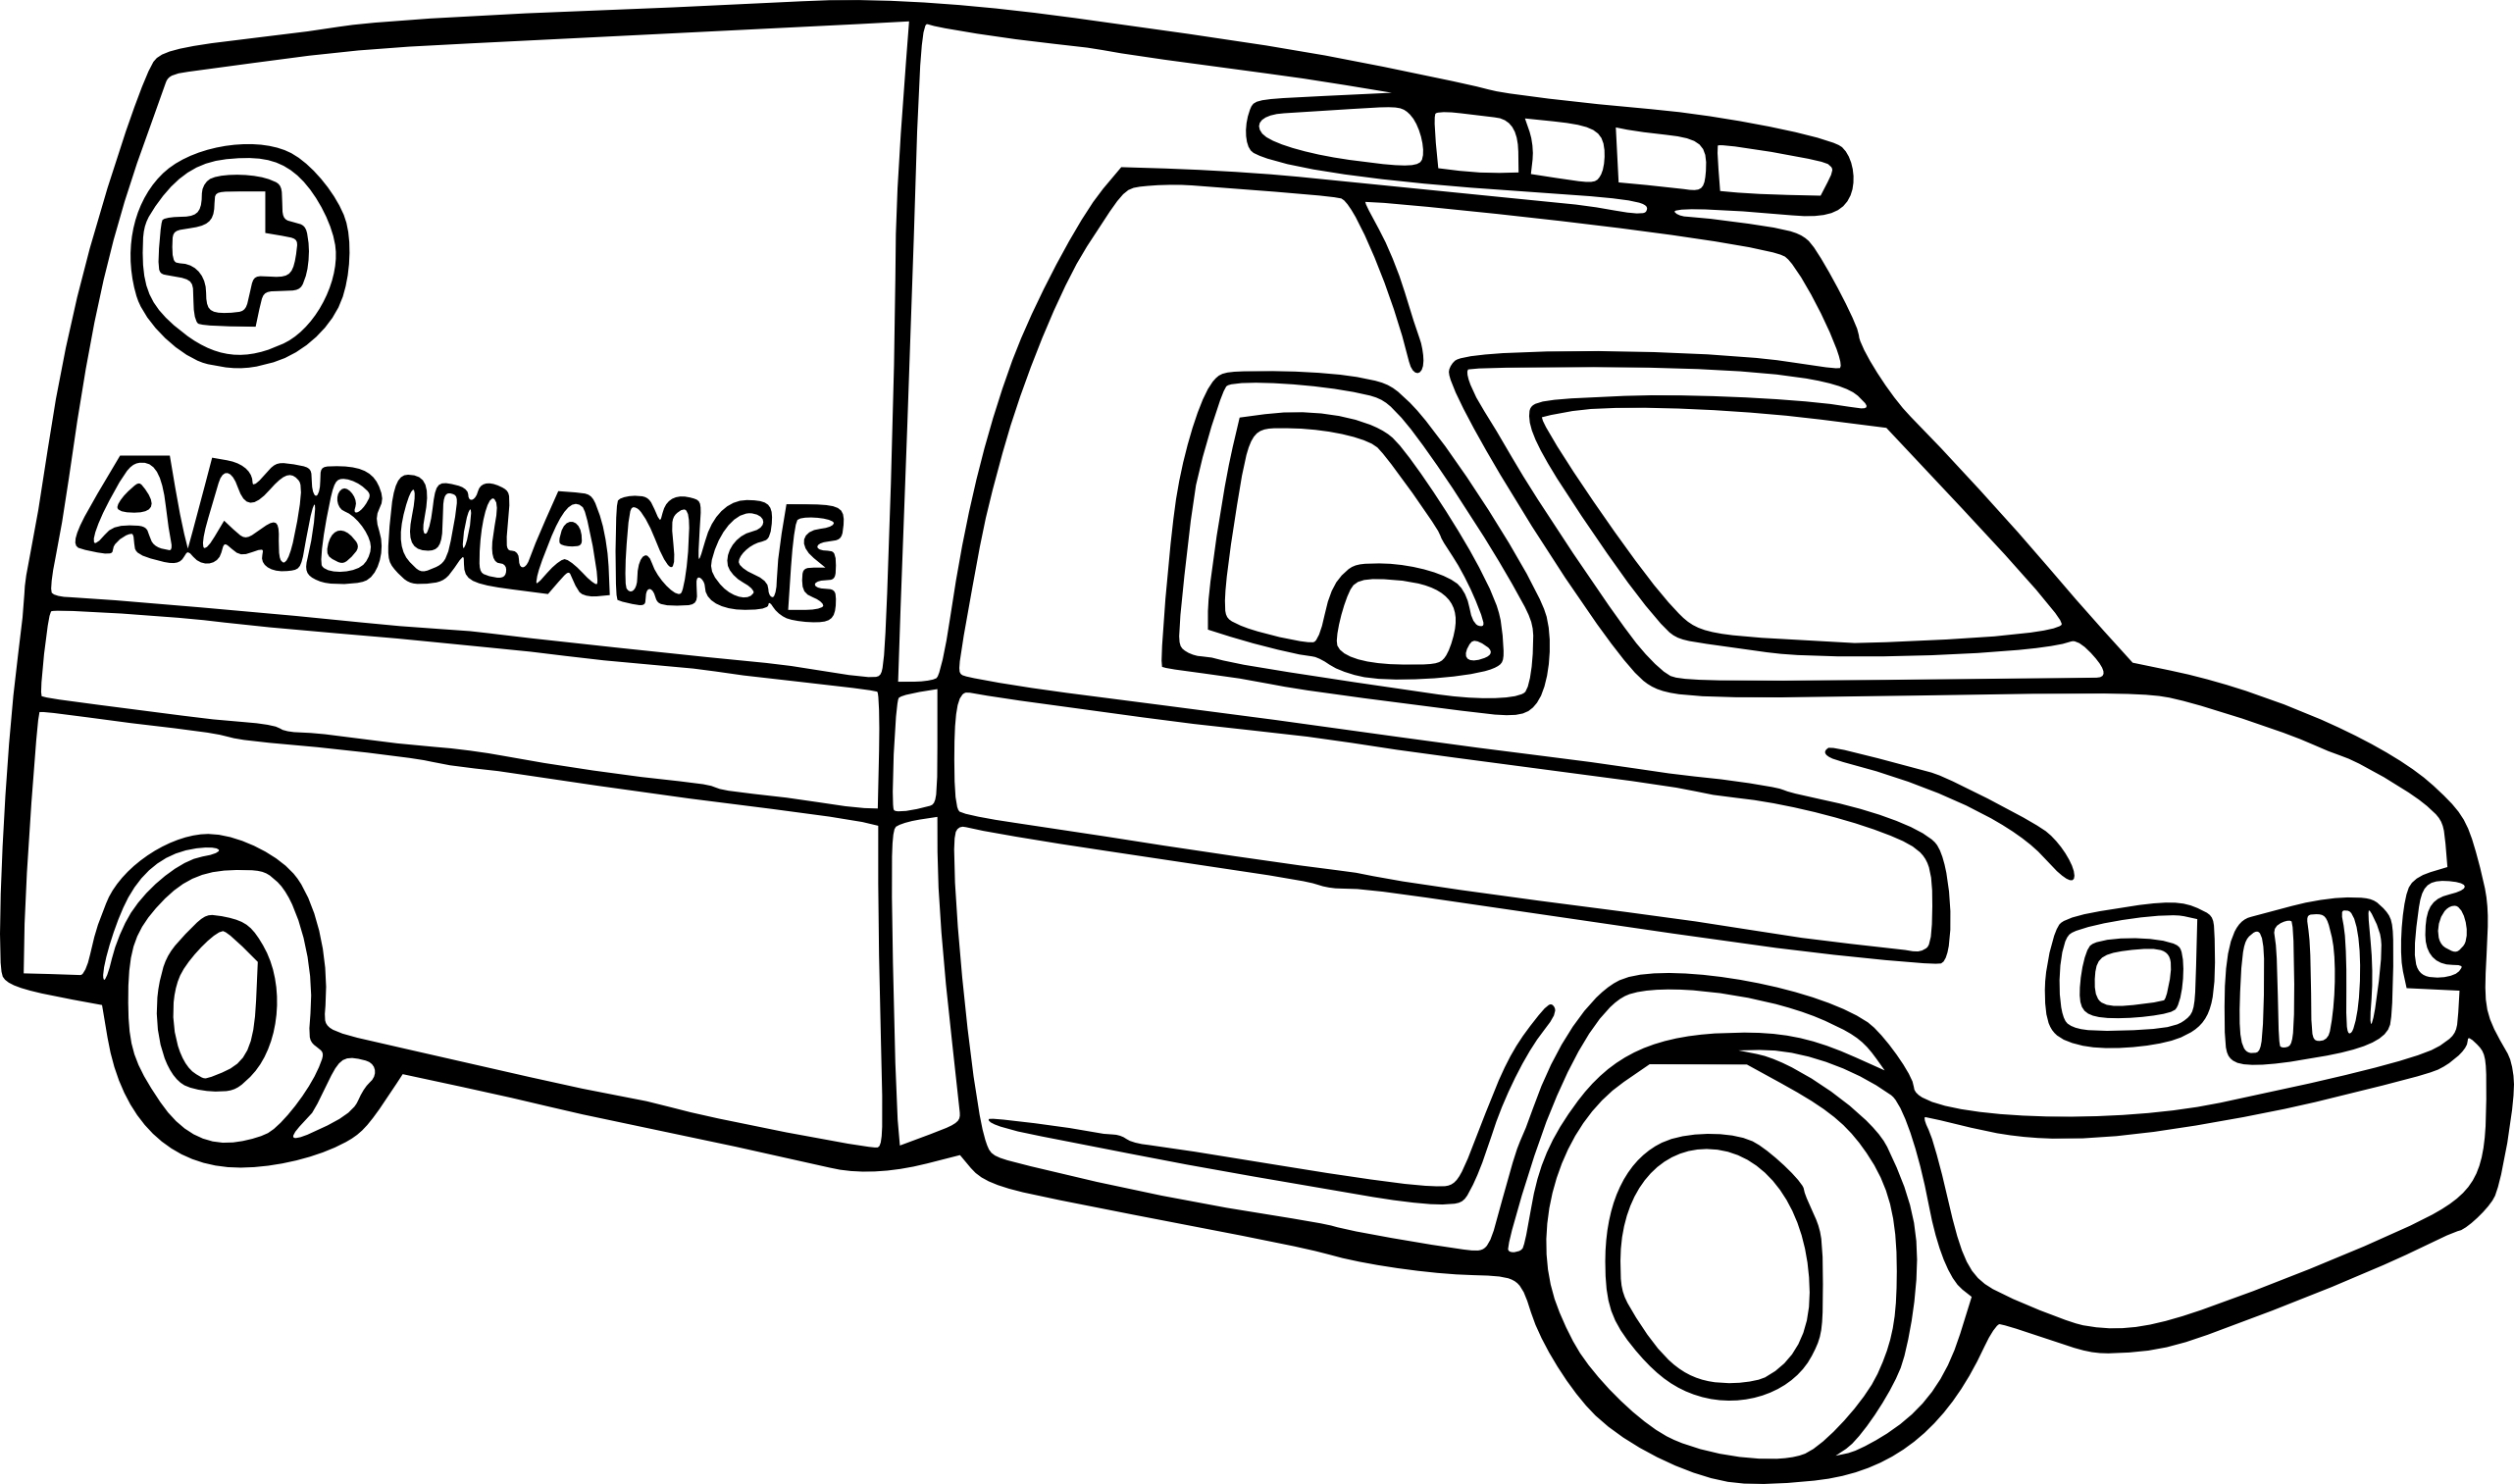 Dibujos De Ambulancias Para Colorear E Imprimir: Ambulance Coloring Pages Print